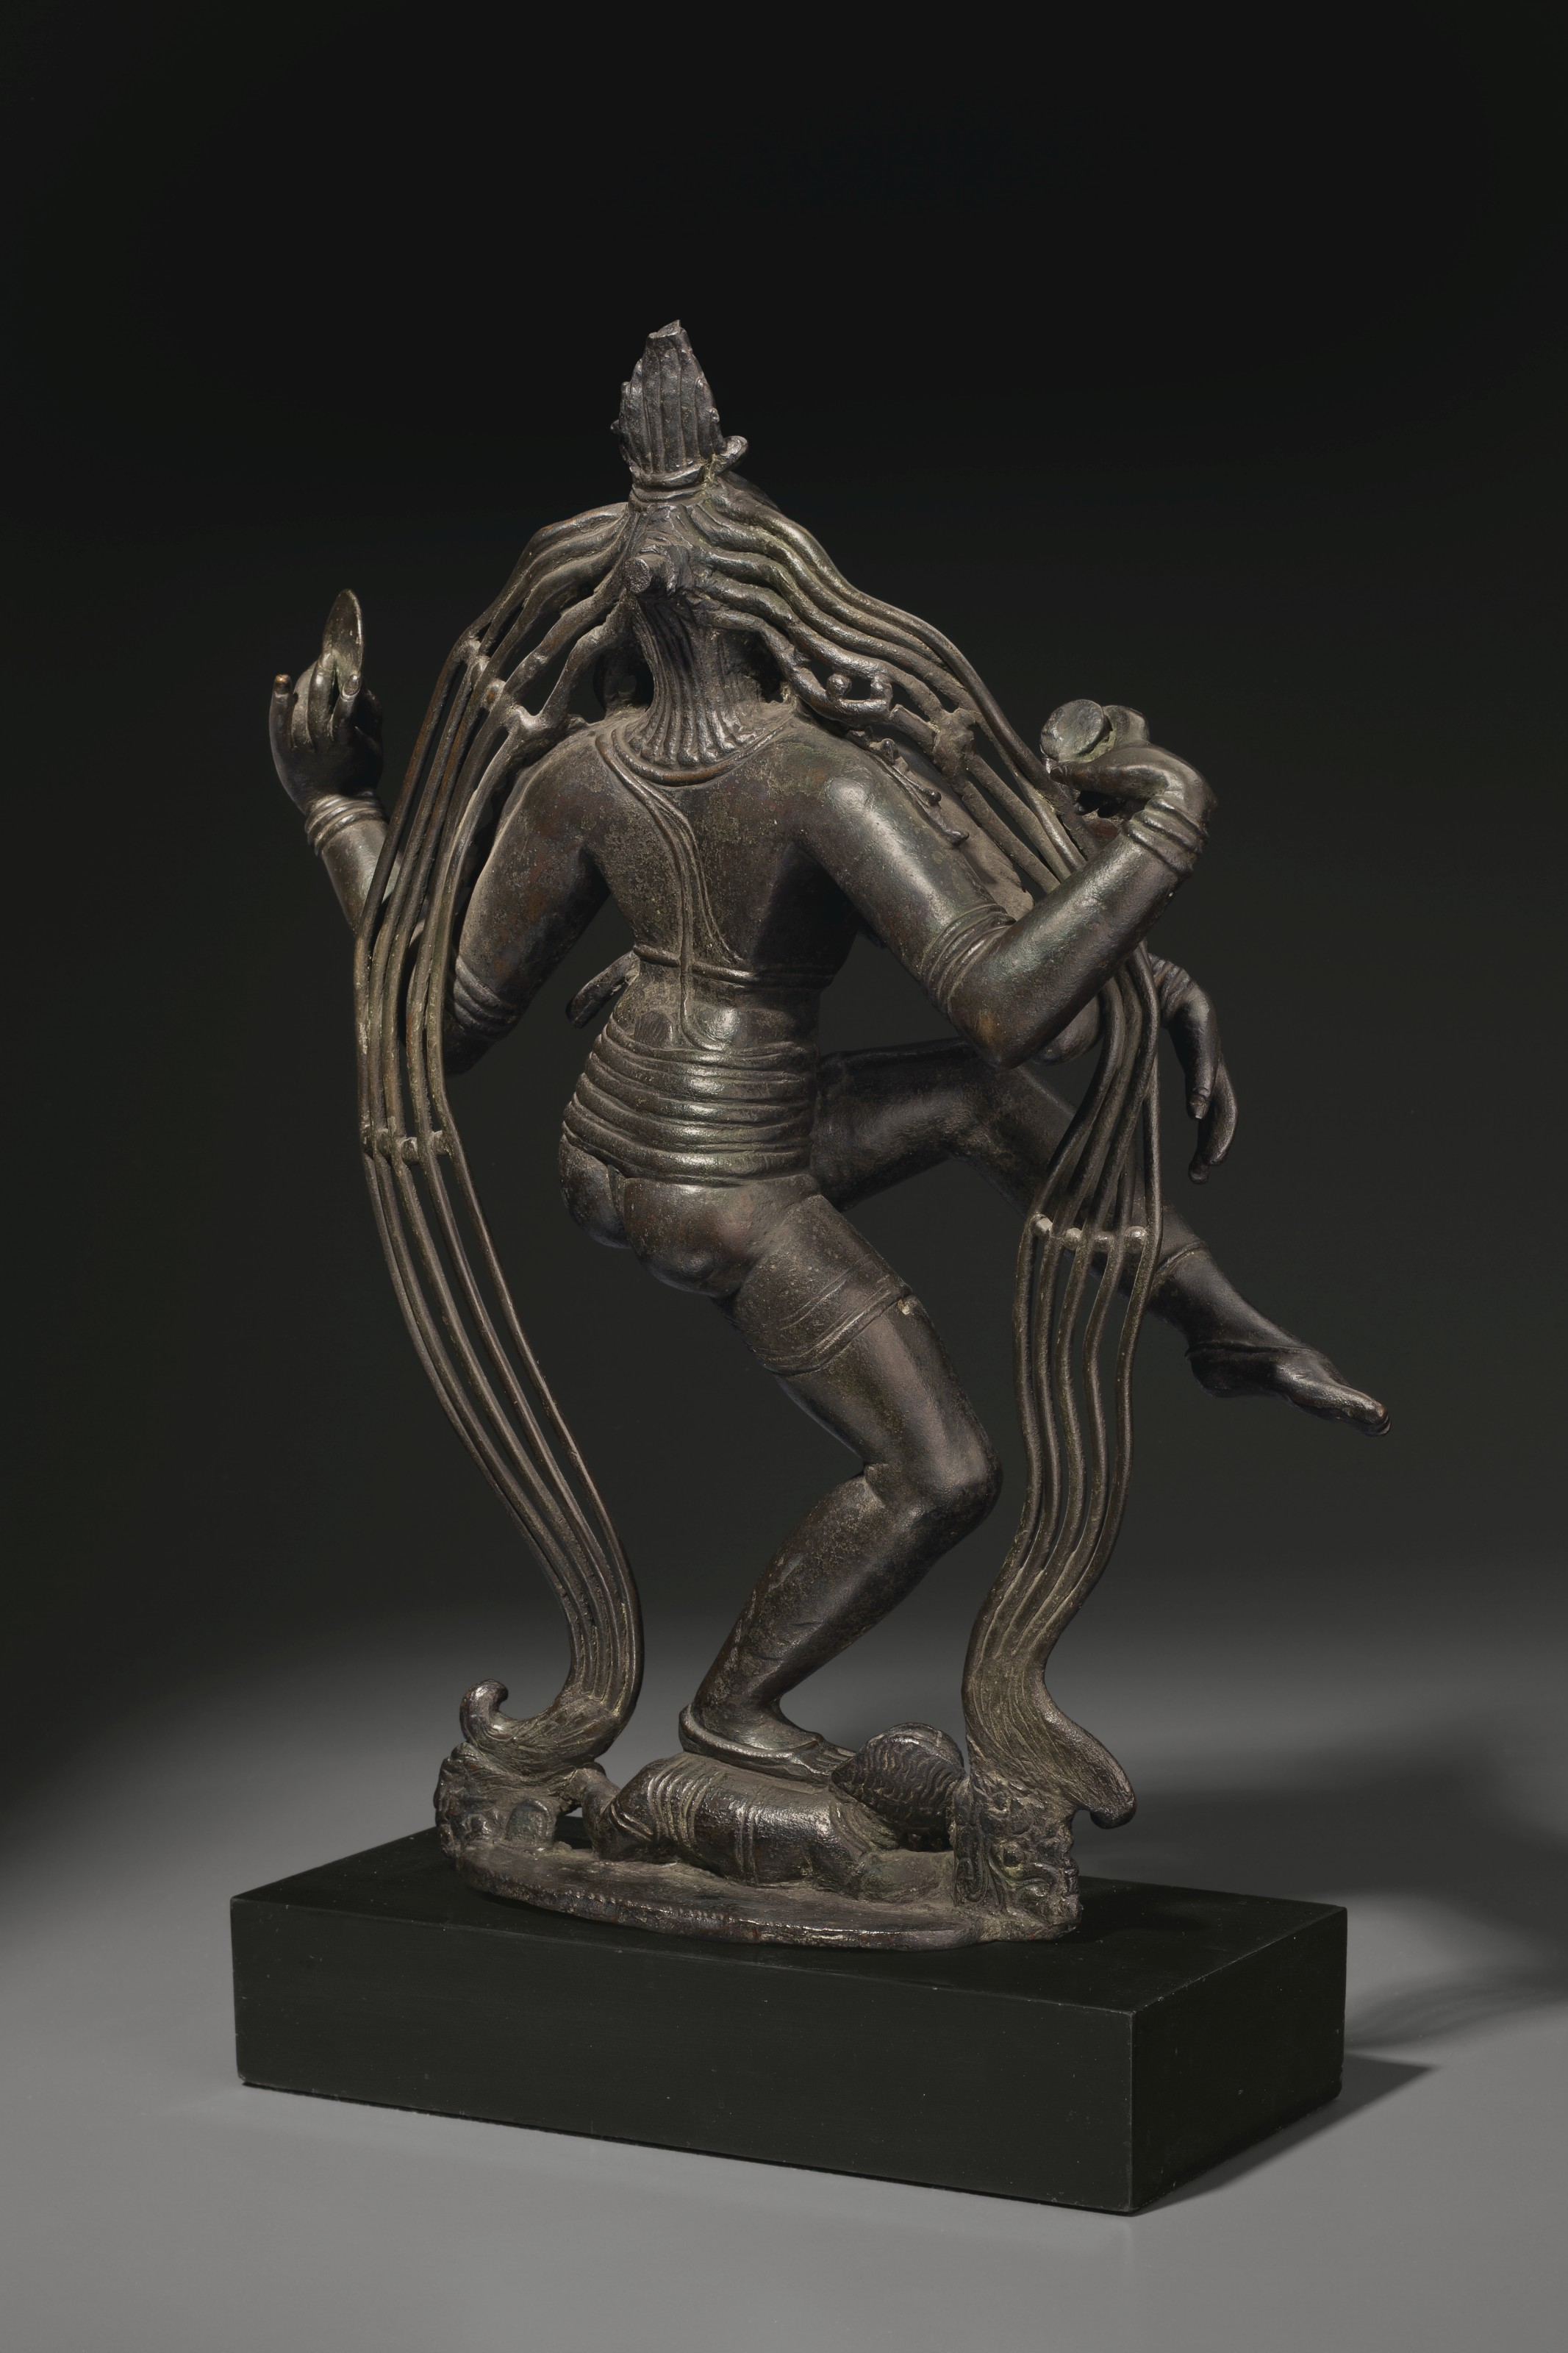 A RARE AND HIGHLY IMPORTANT BRONZE FIGURE OF SHIVA